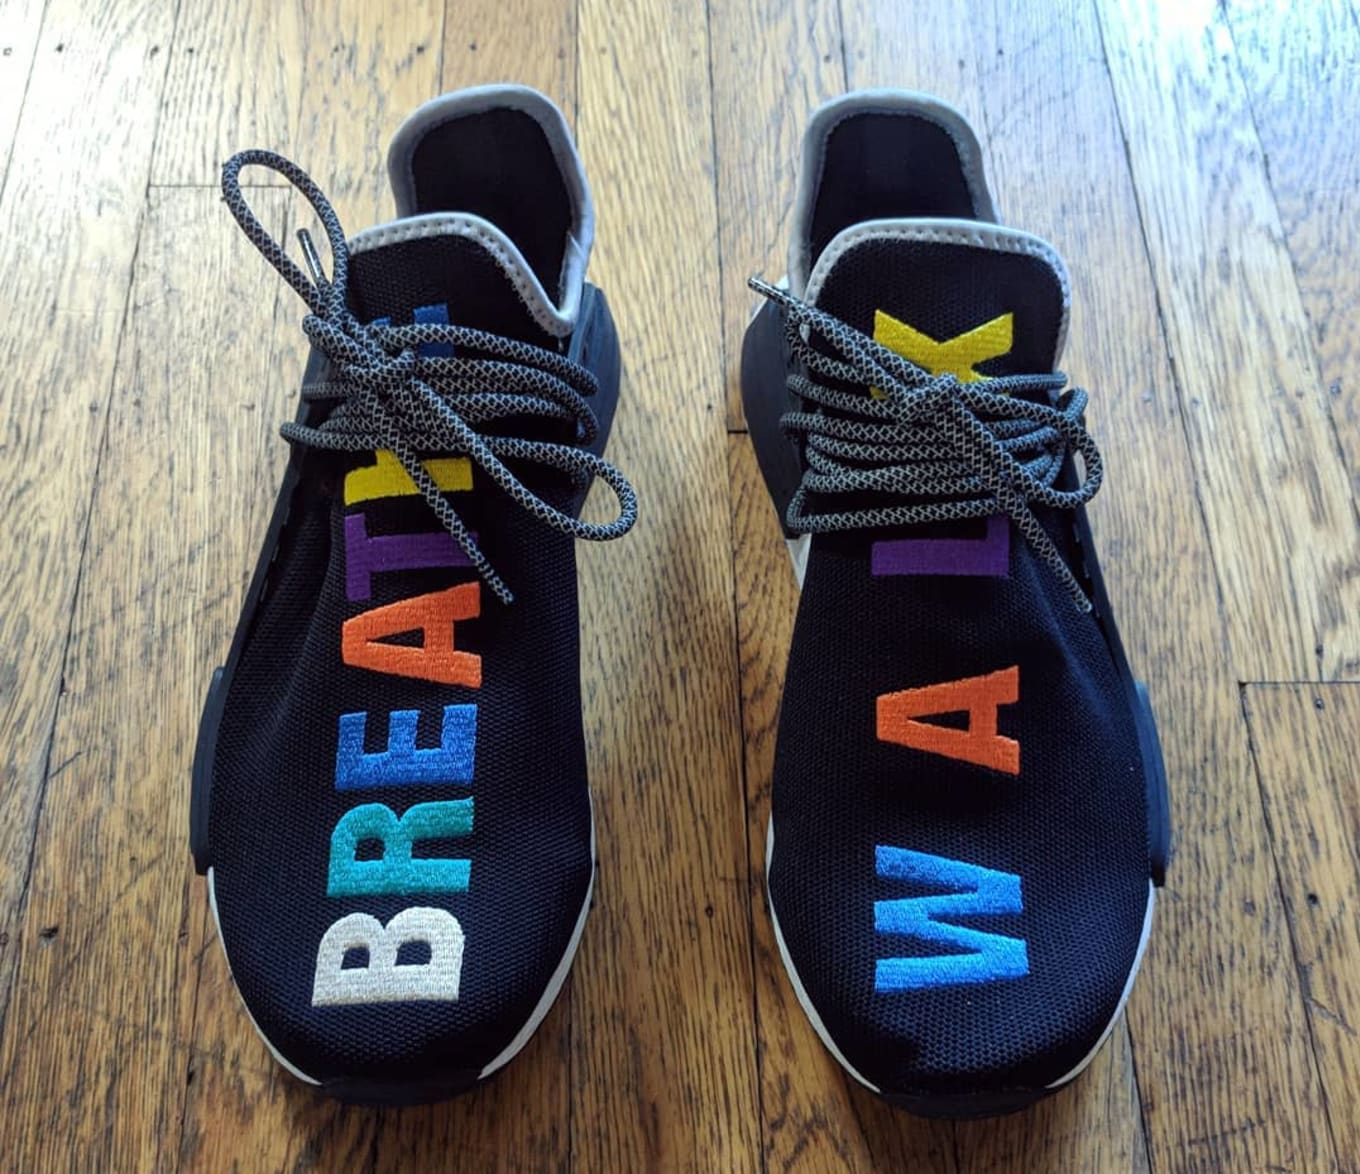 d7550610d5091 Pharrell Williams x Adidas NMD Hu  Breathe and Walk  Friends and ...